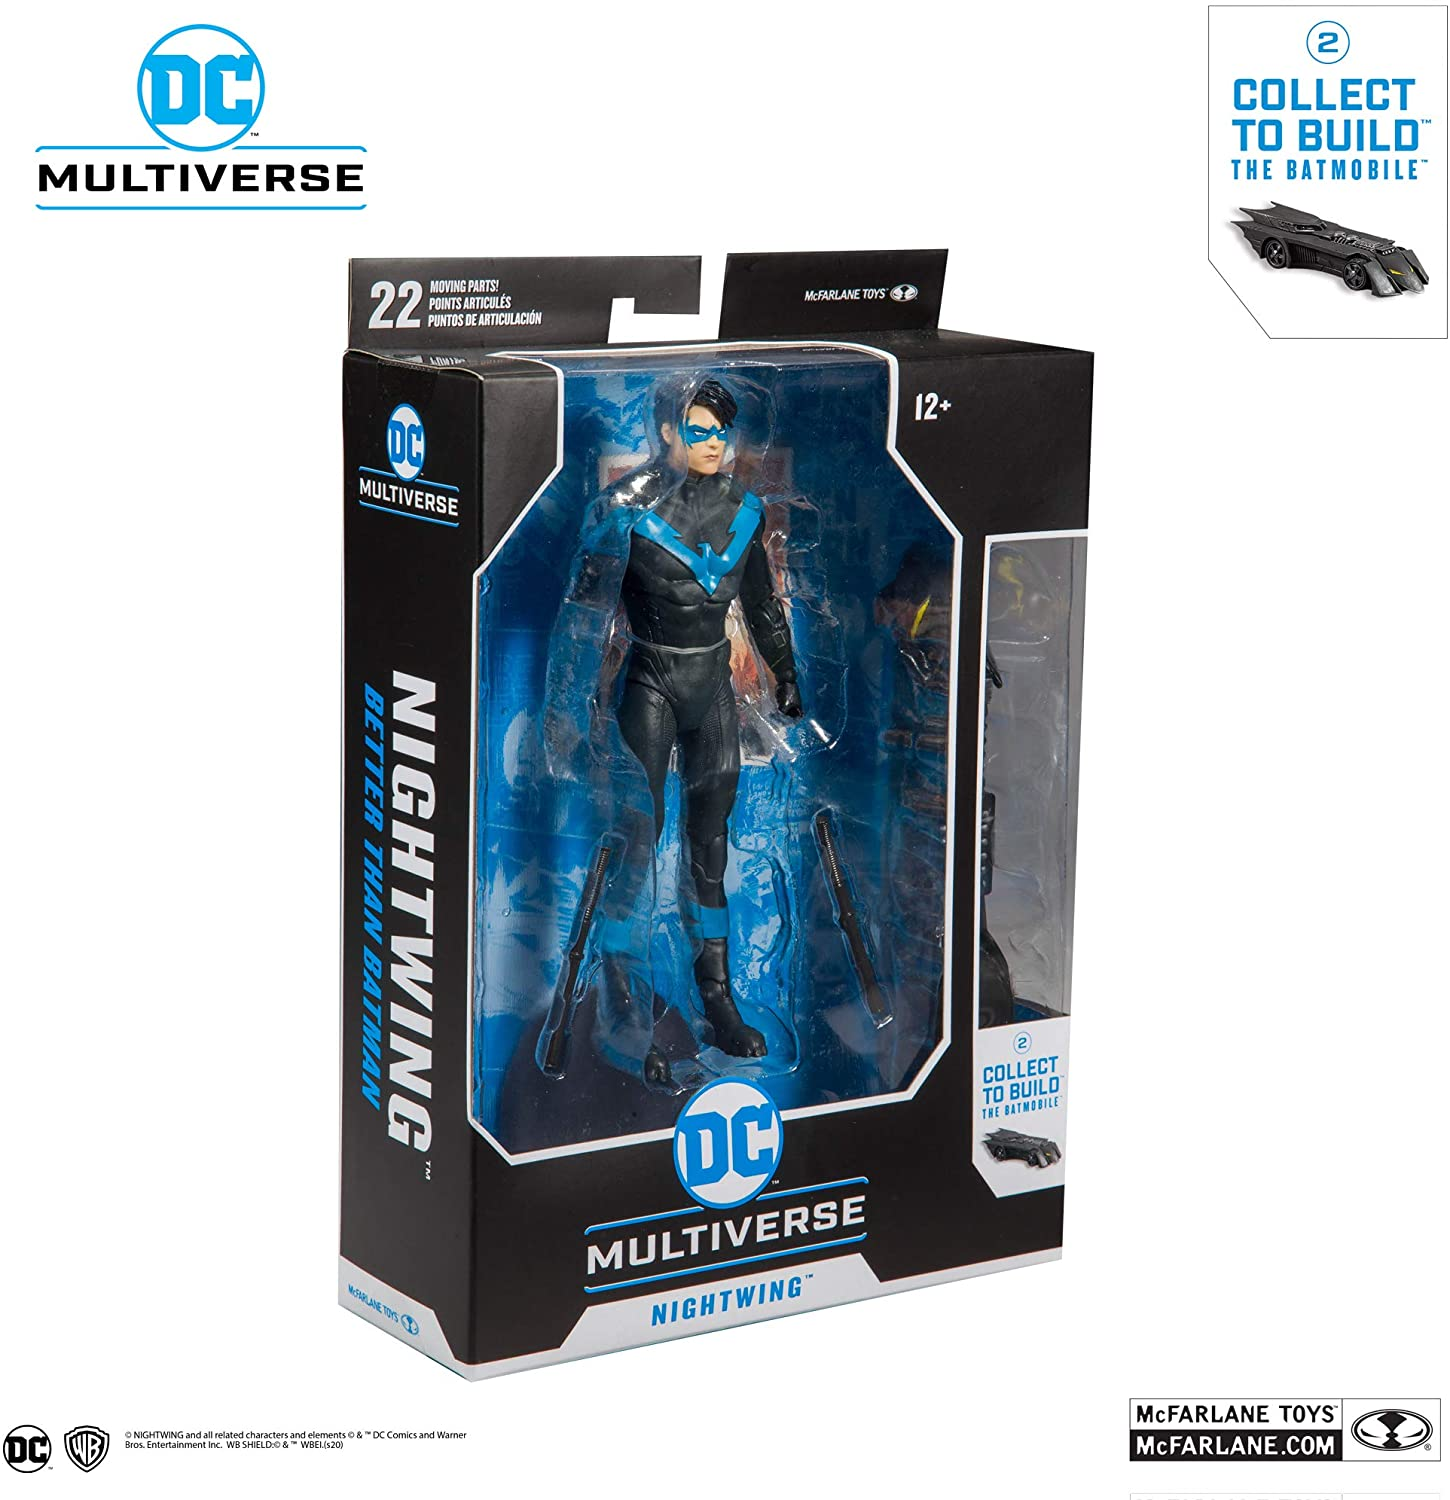 Nightwing: DC Multiverse McFarlane Toys Action Figure